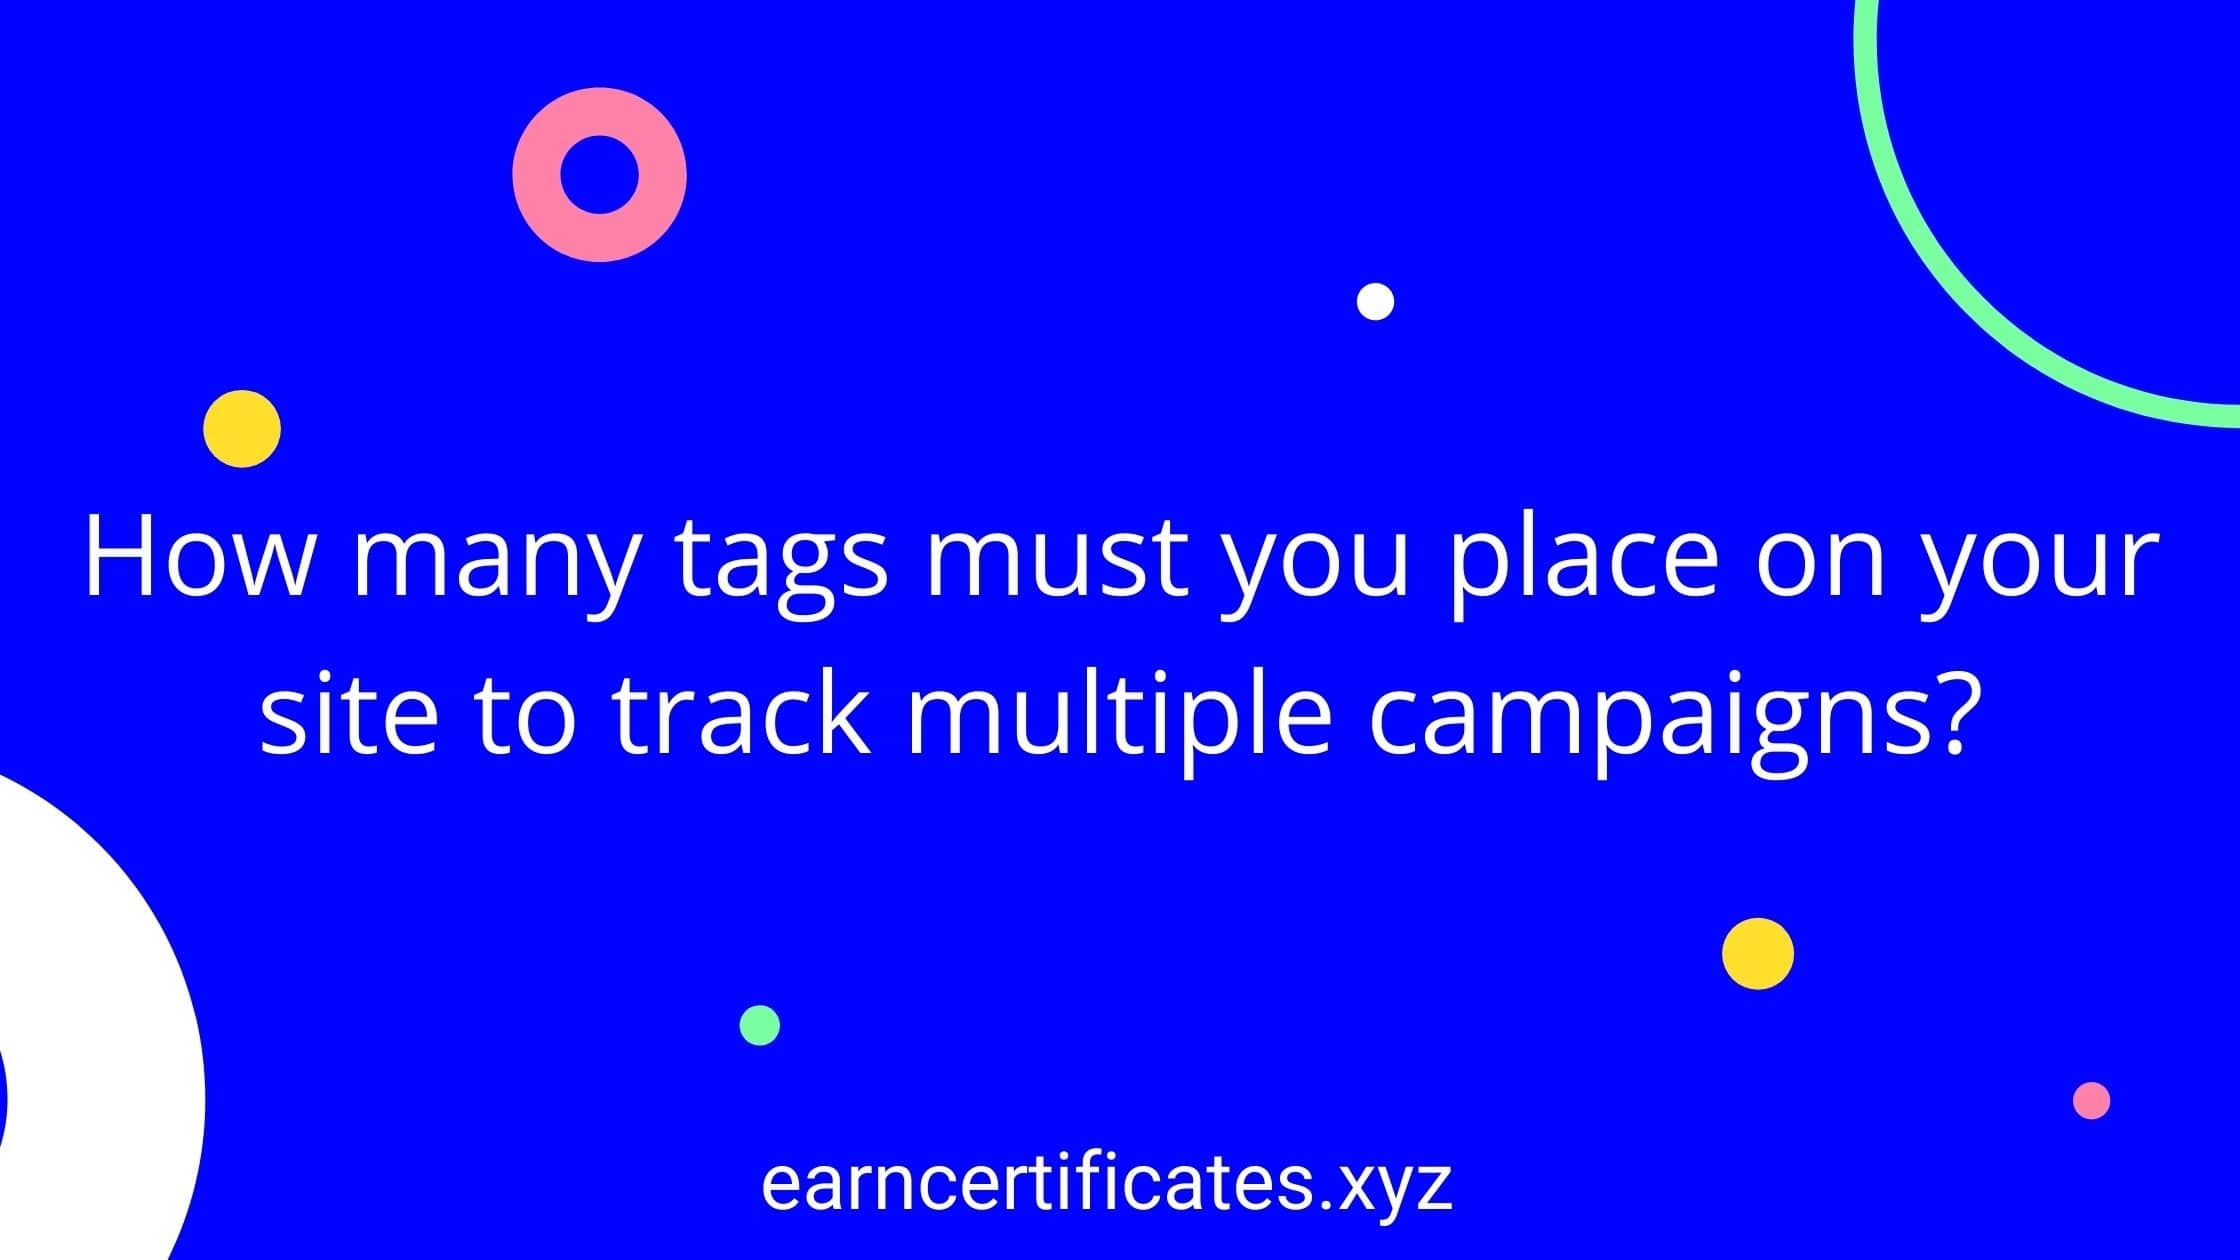 How many tags must you place on your site to track multiple campaigns?